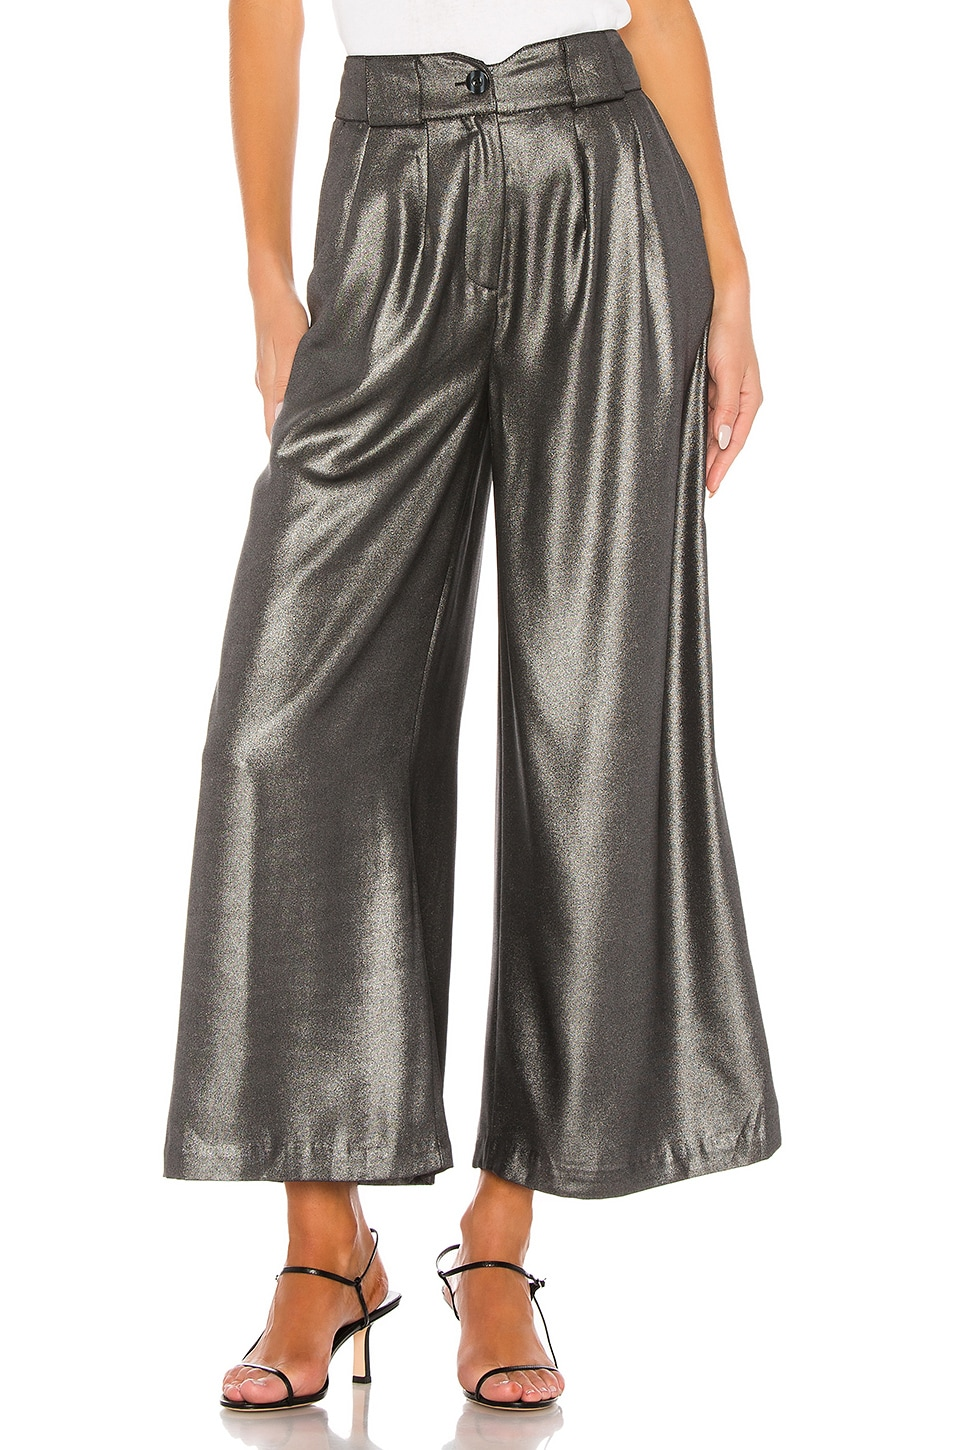 L'Academie The Leelee Pant in Silver